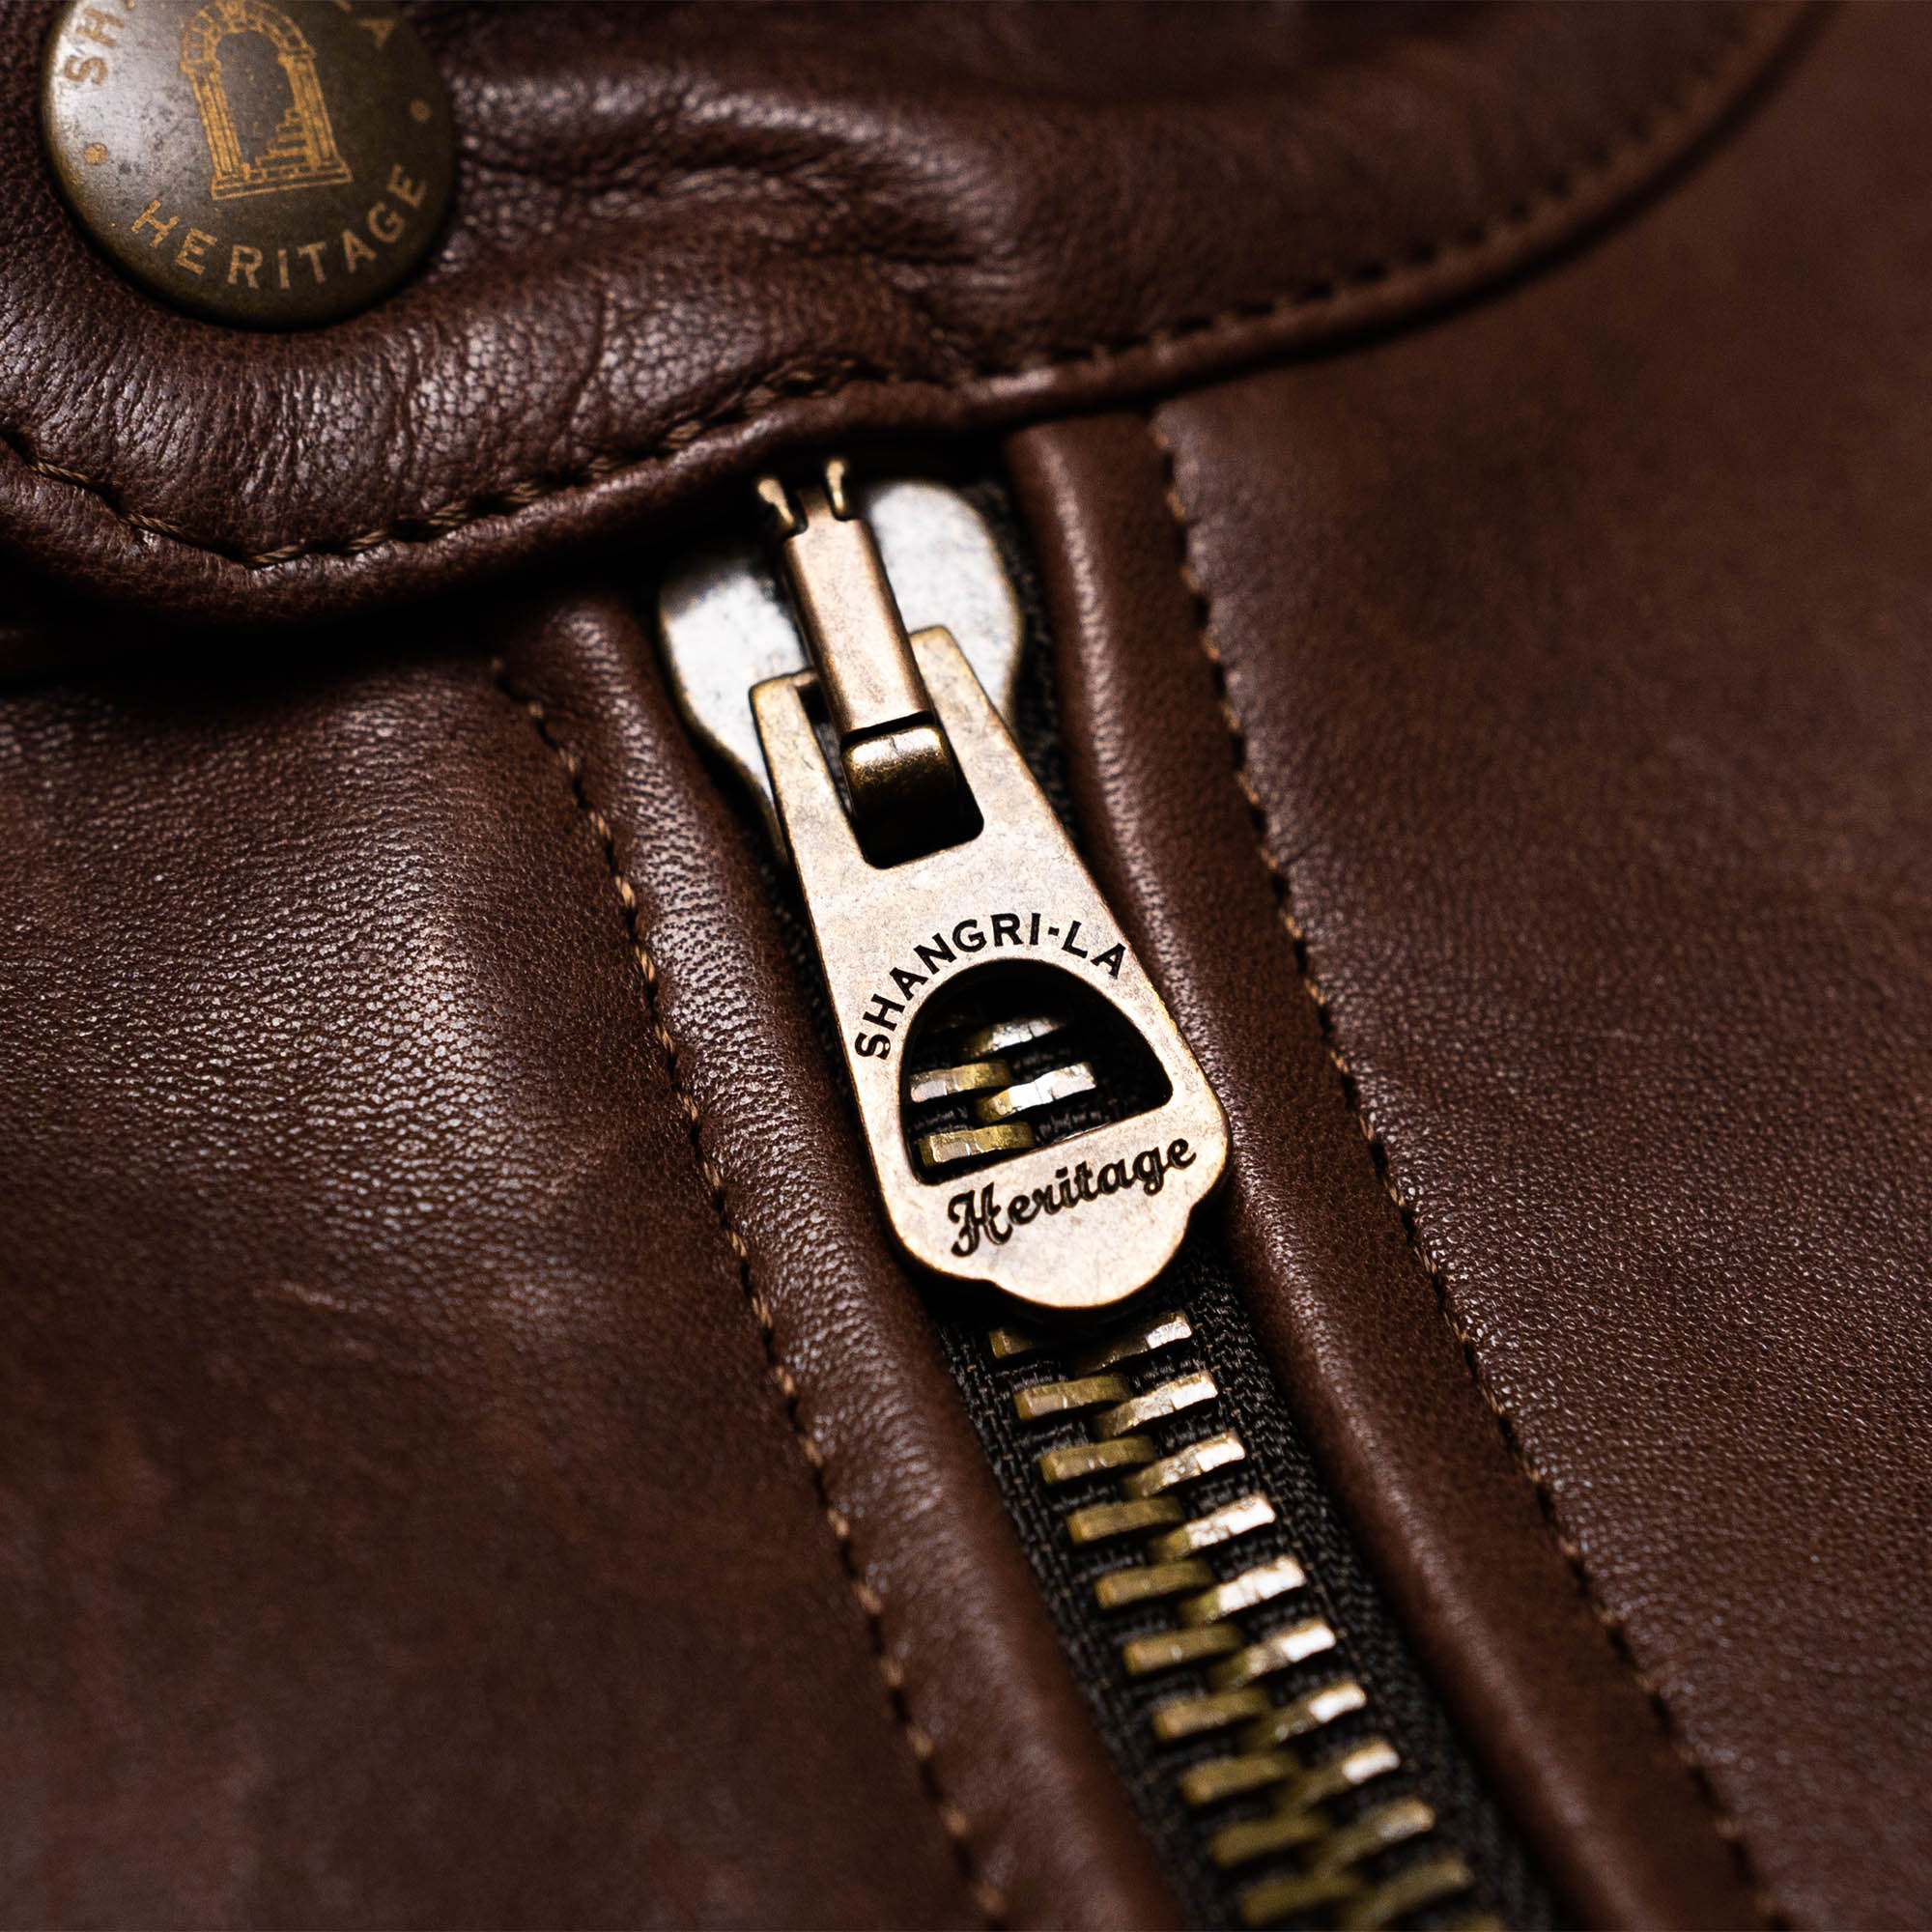 shangri-la-heritage-cafe-racer-brown-lambskin-jacket-still-life-new-zipper